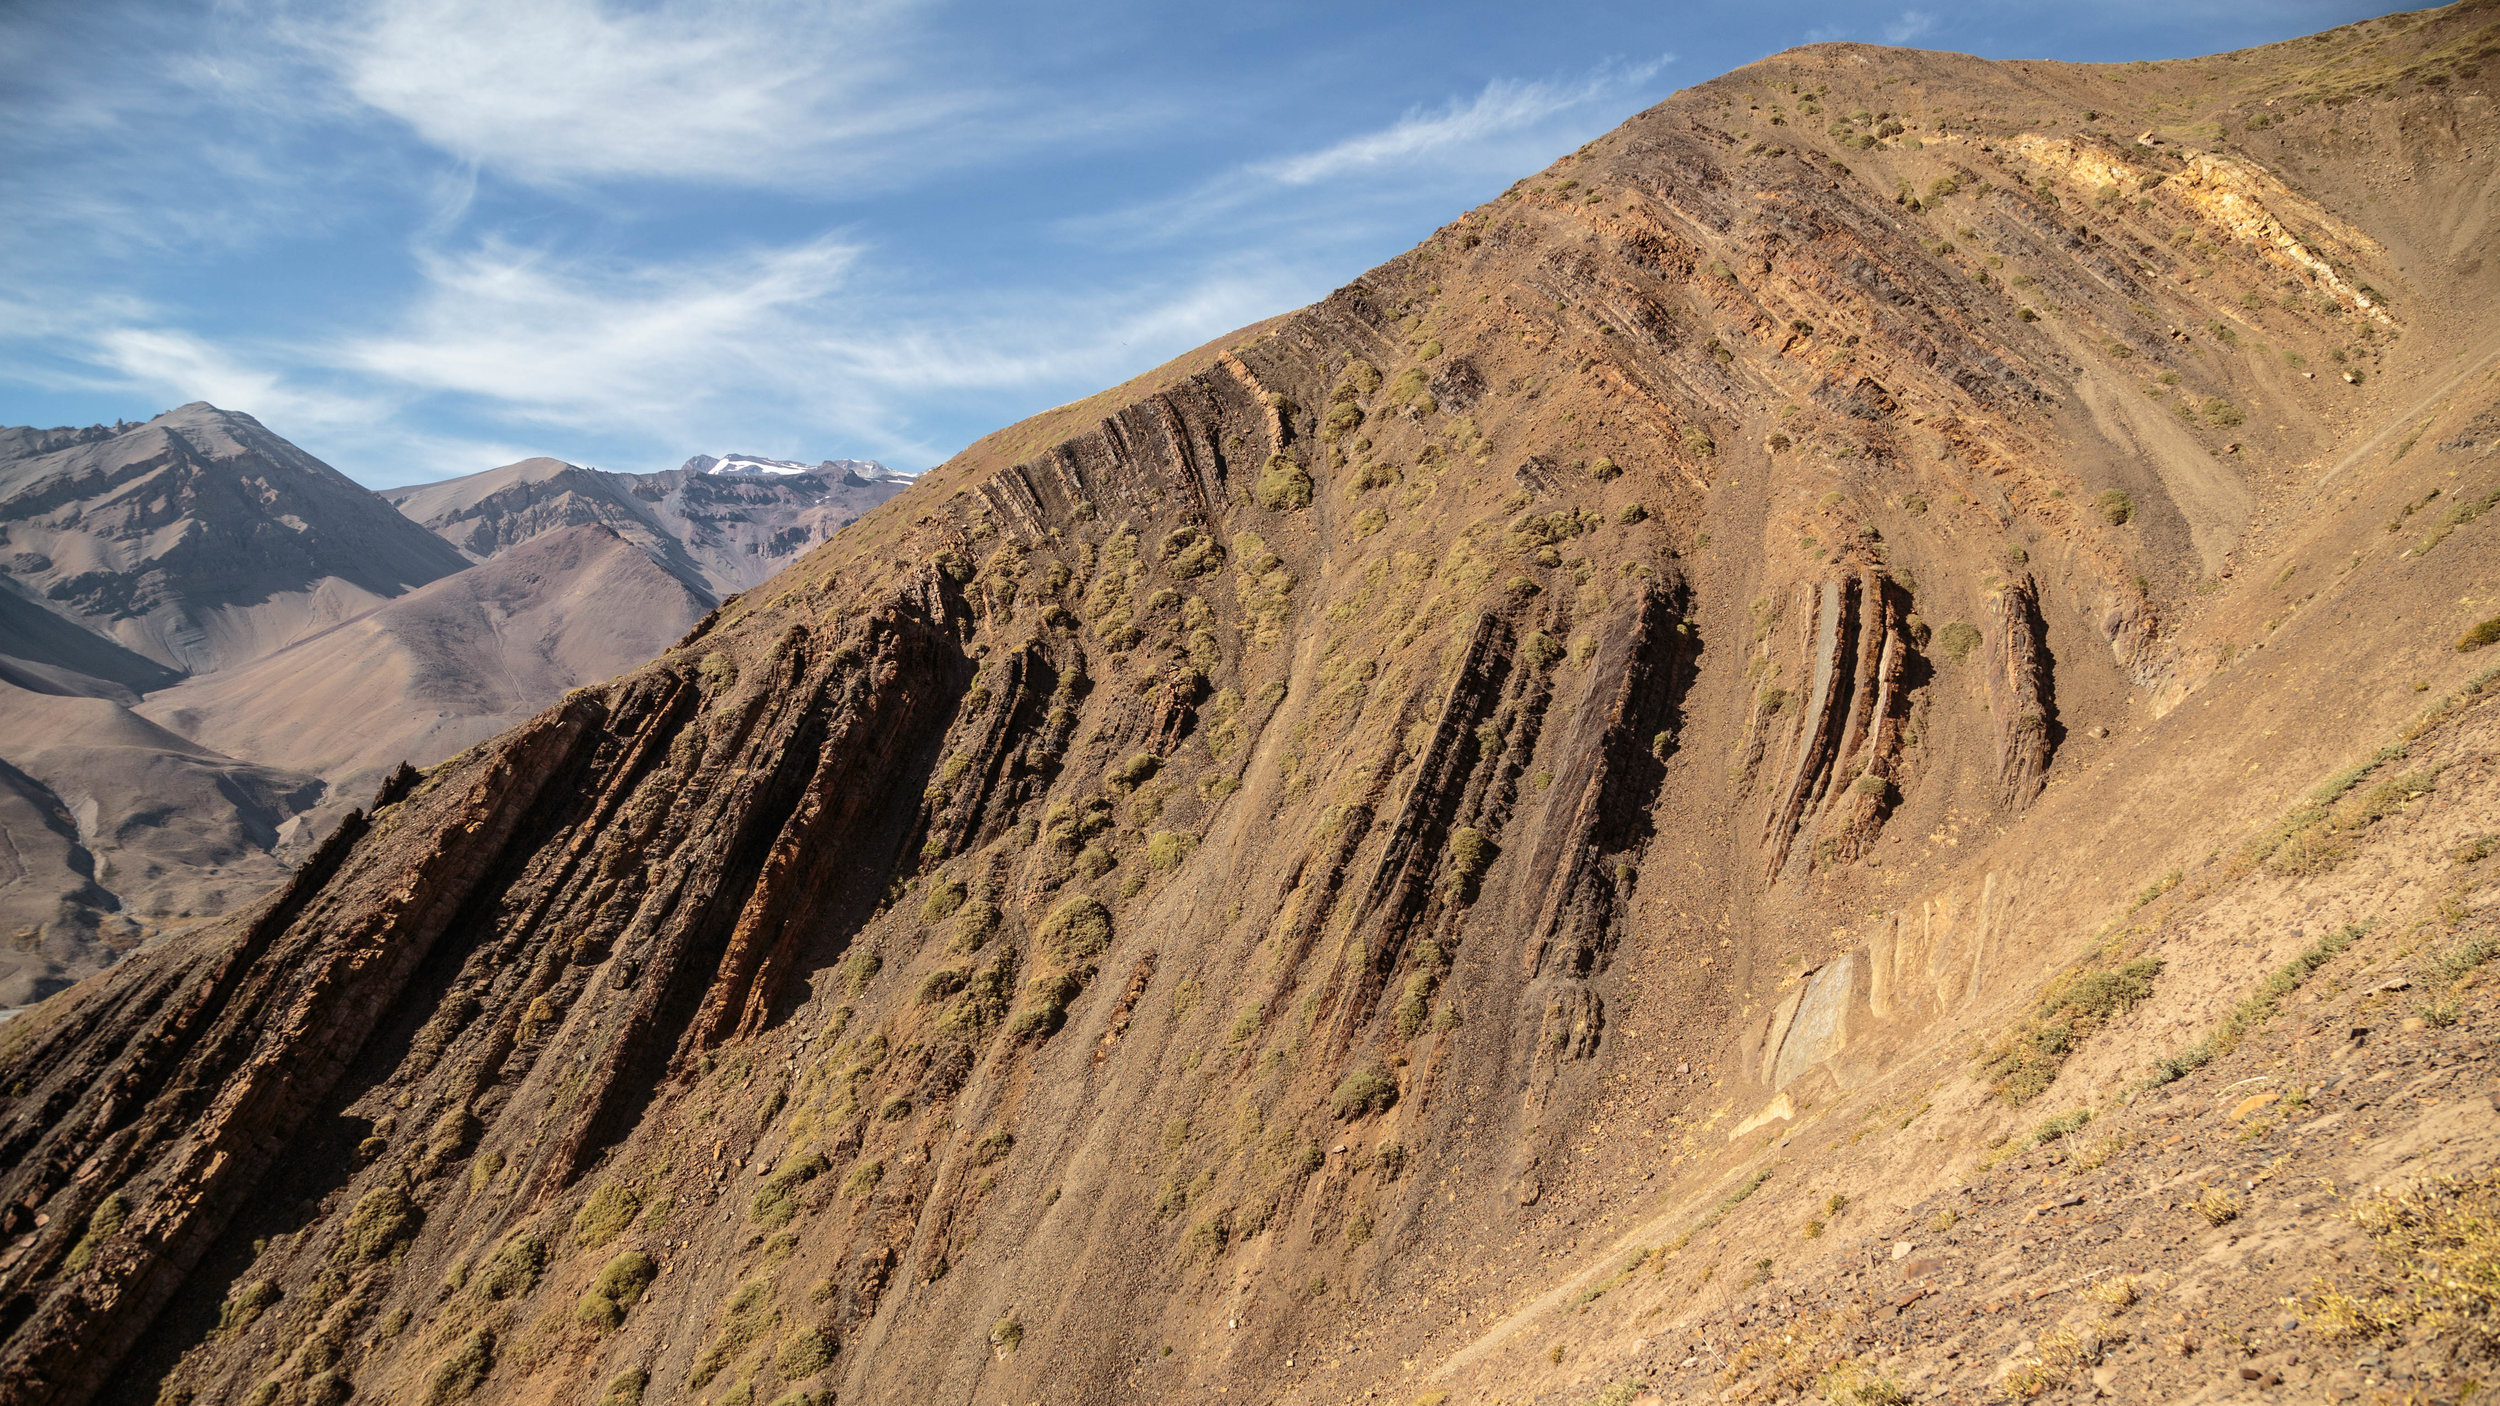 Kink fold associated with mass movement in a middle Jurassic marine sequence, Valle del Yeso, central Chile.